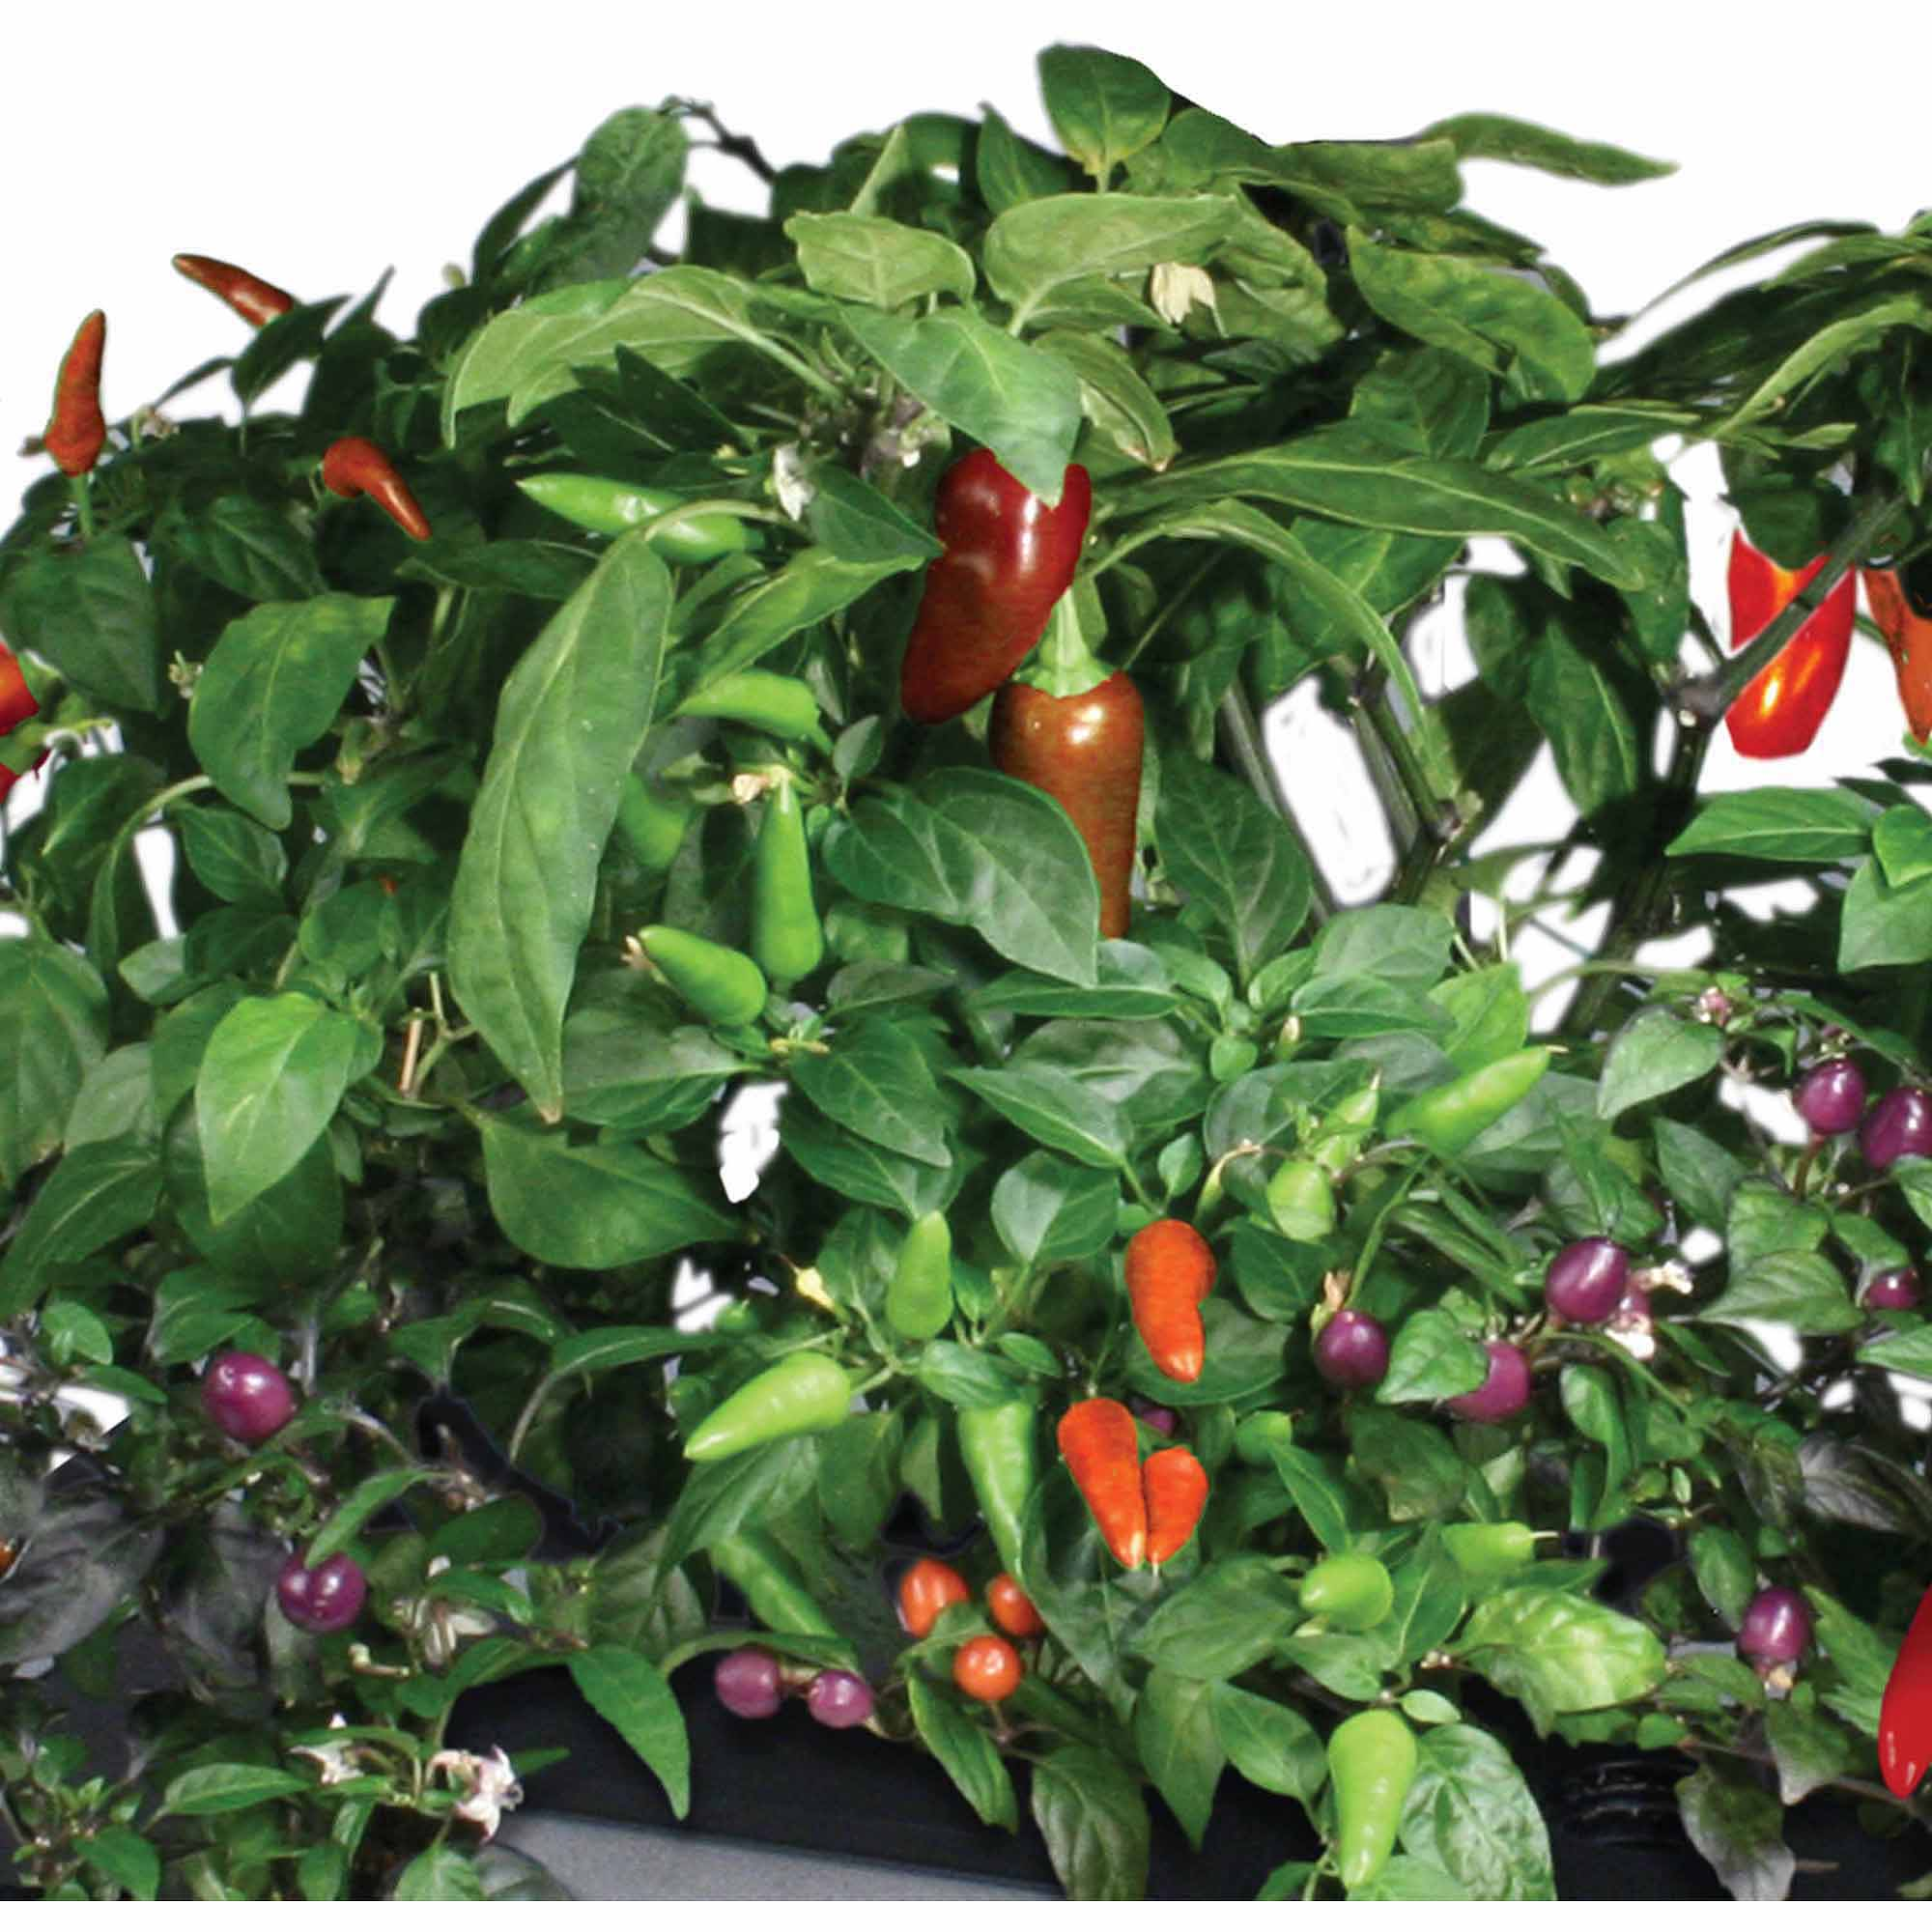 Miracle-Gro AeroGarden Chili Peppers 7-Pod Seed Kit